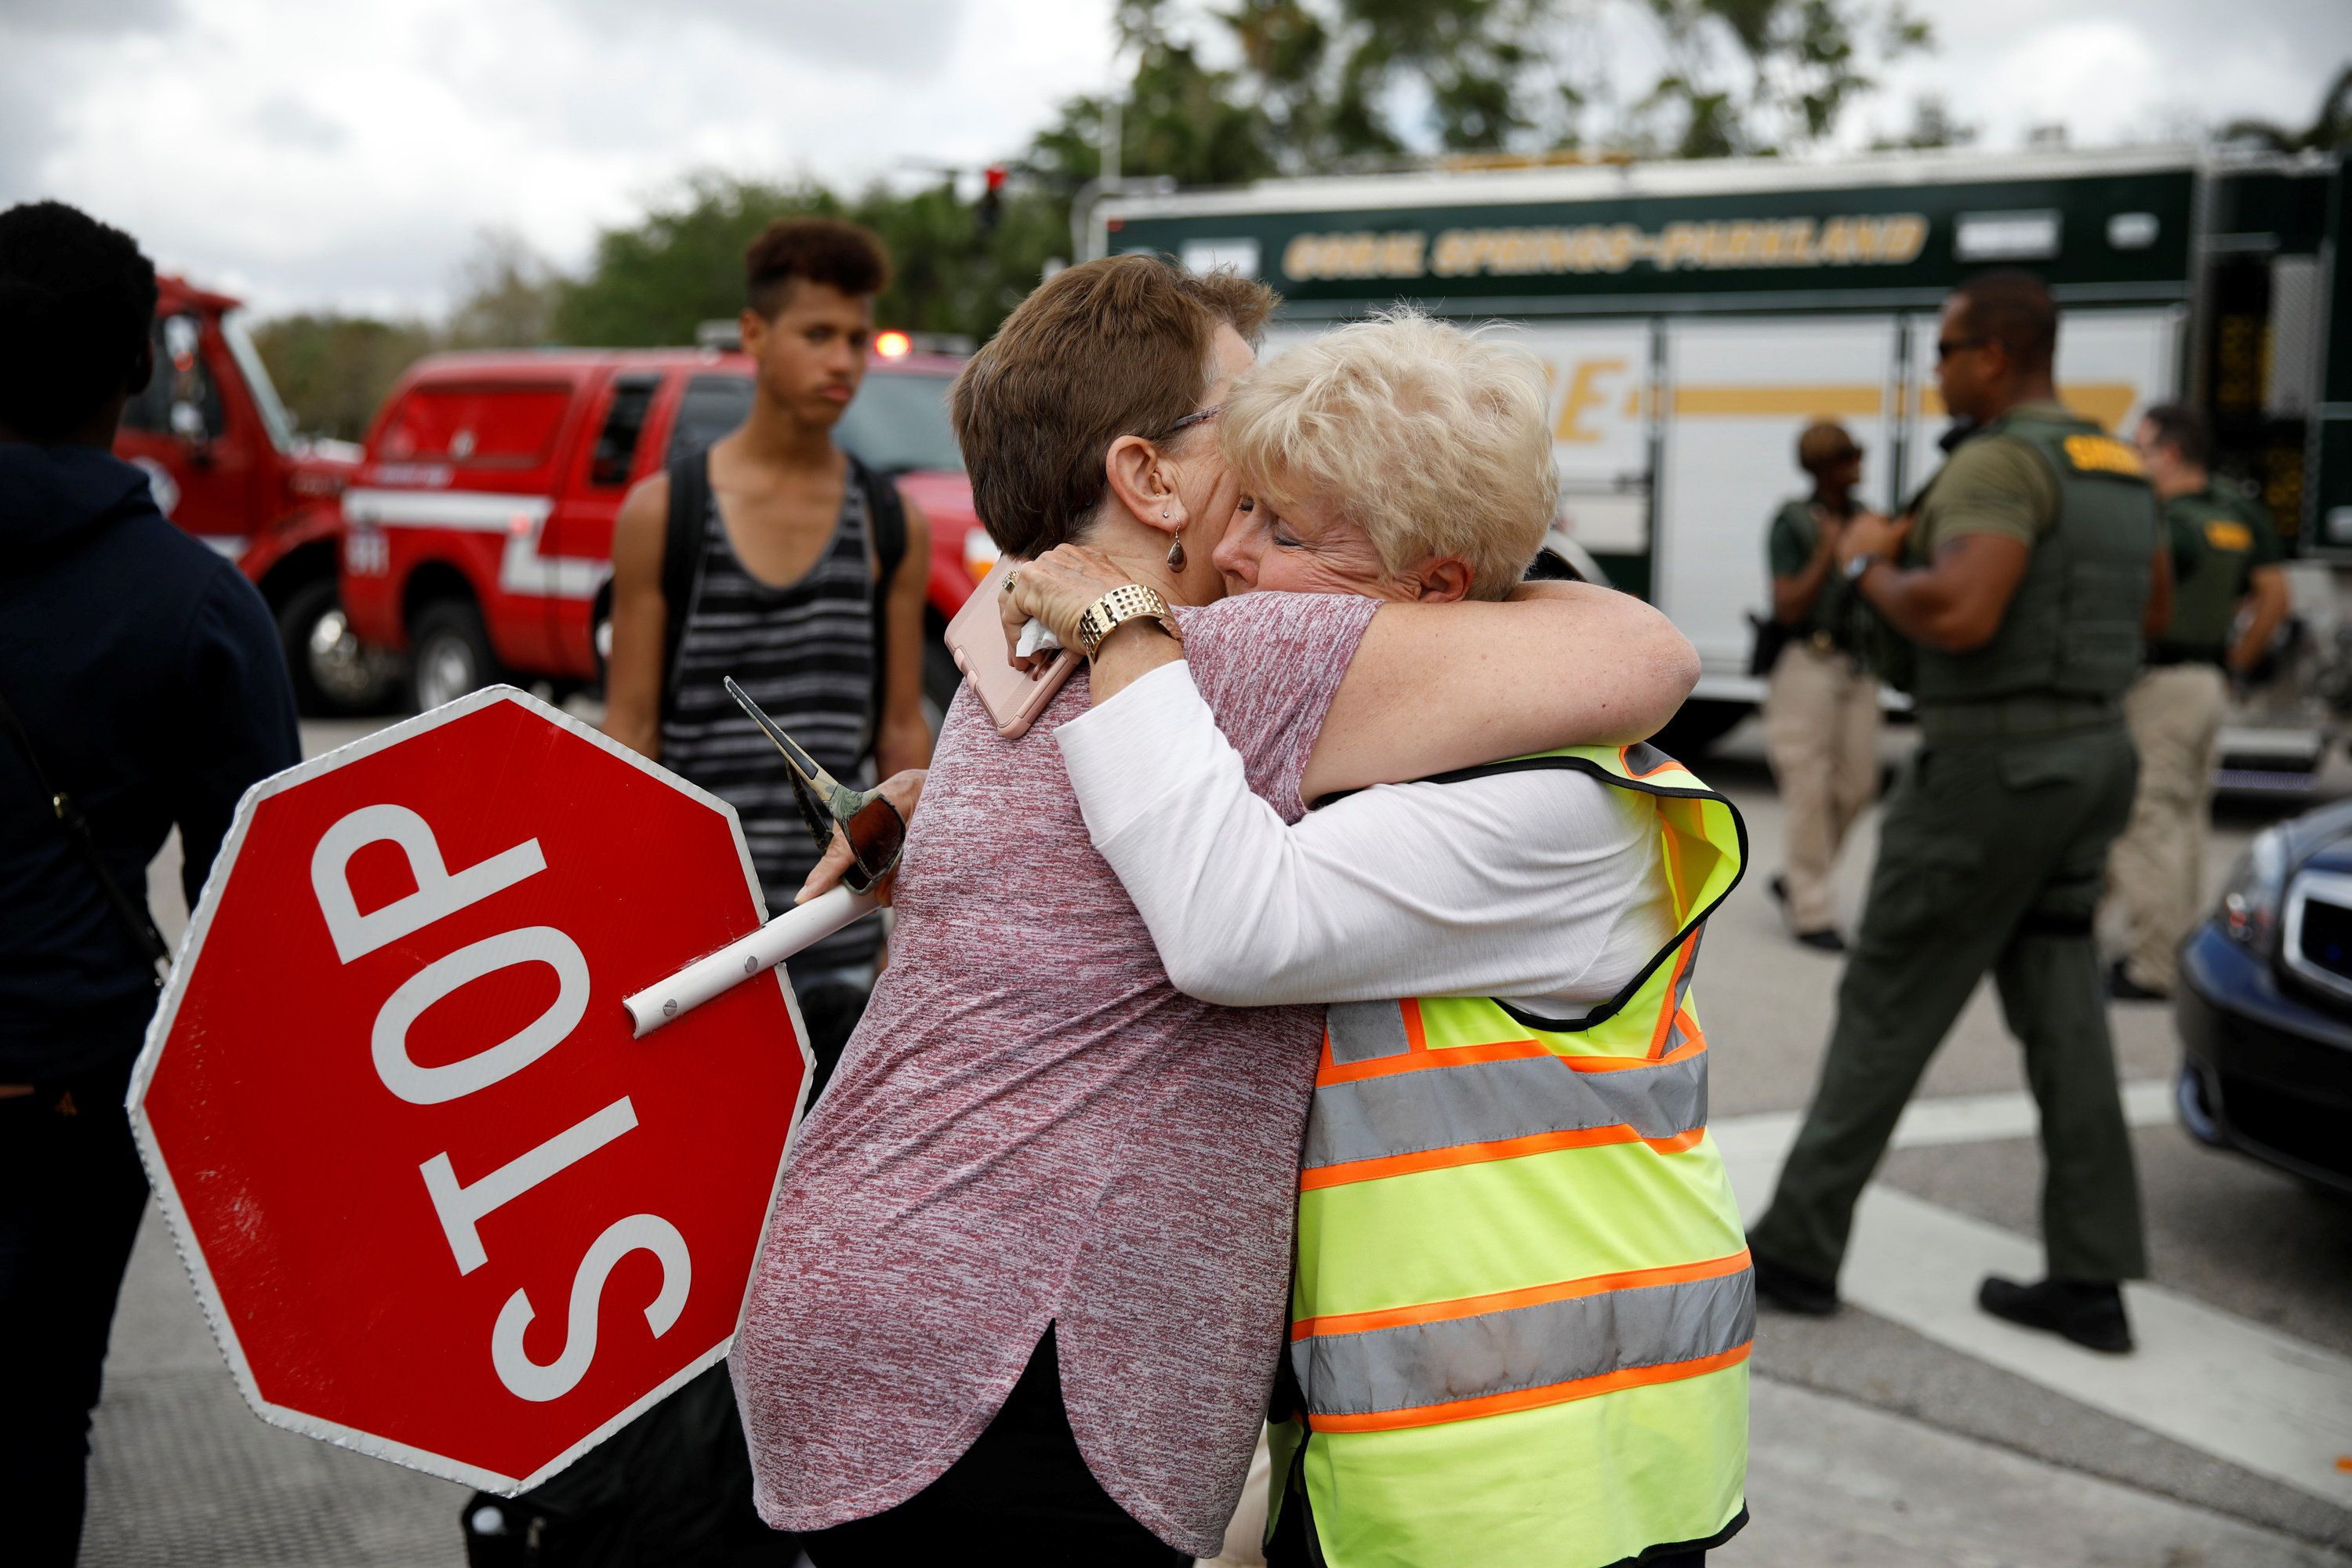 Crossing guard hugs student at Majory Douglas Stoneman High School in Parkland as kids return to classes after mass shooting